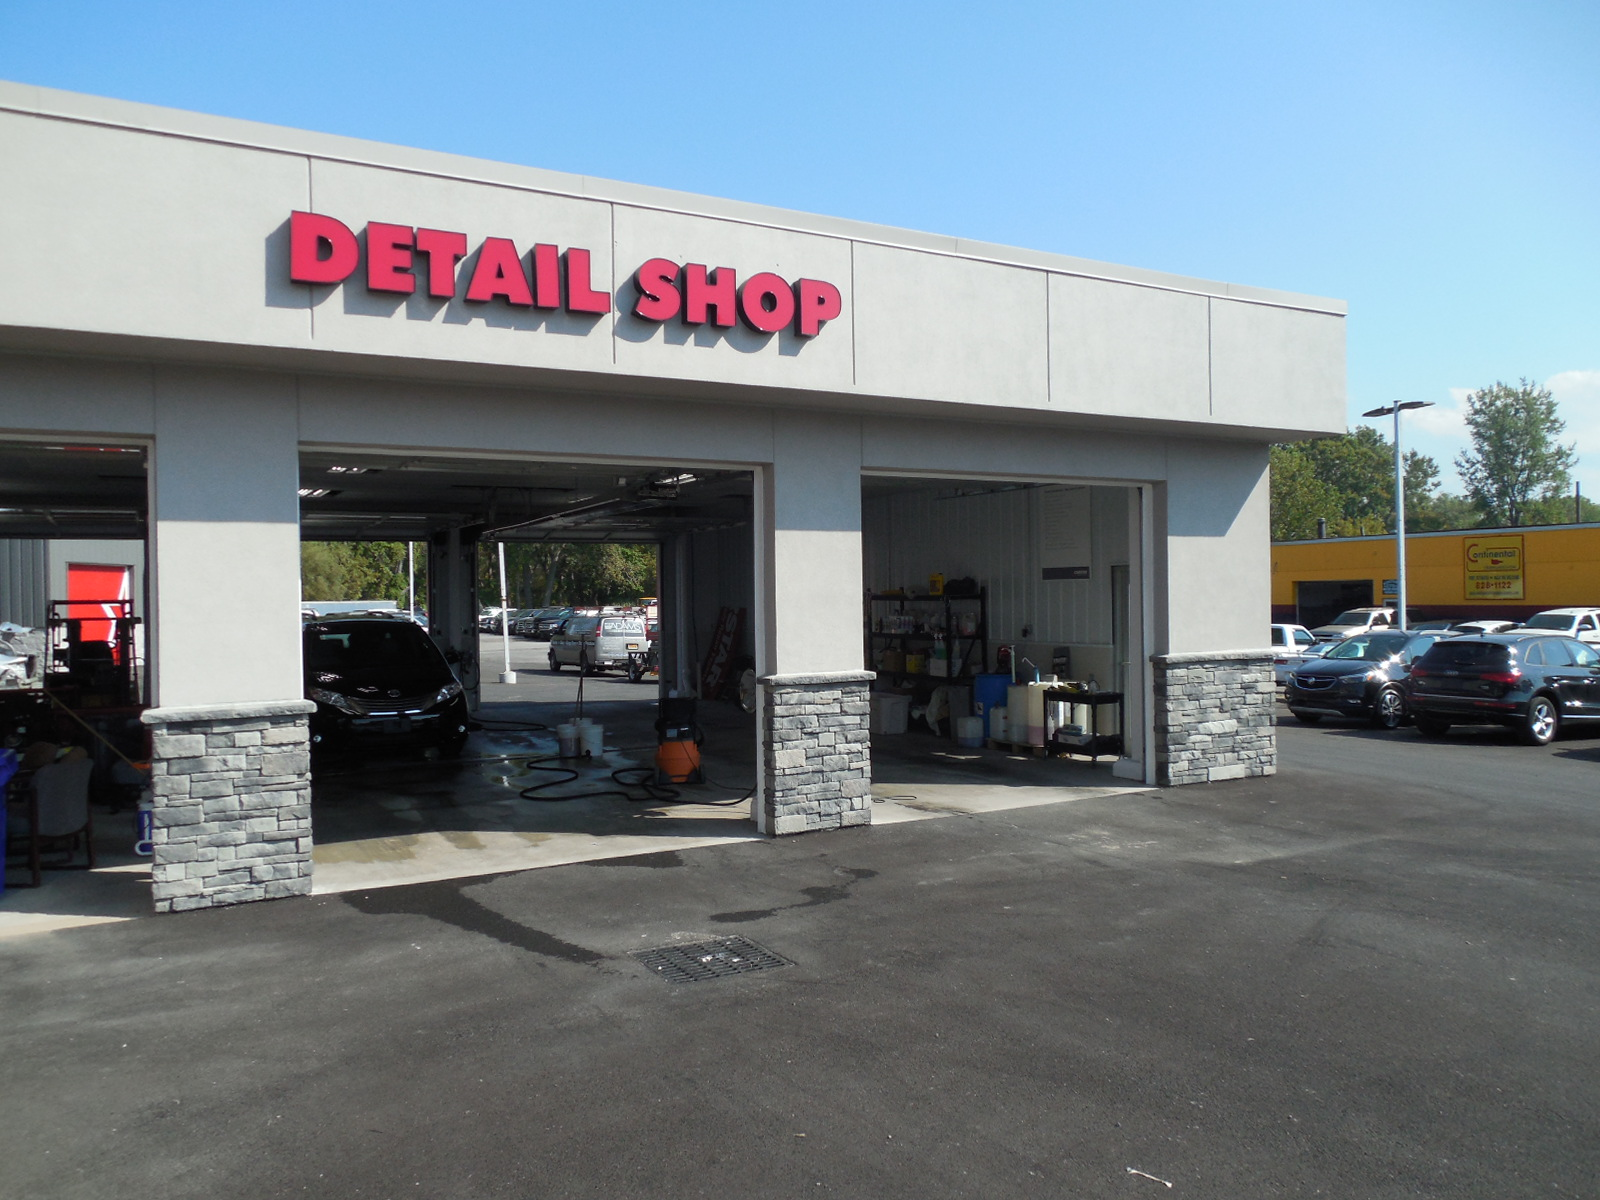 CARSTAR West Seneca Auto Body Repair: Detailing